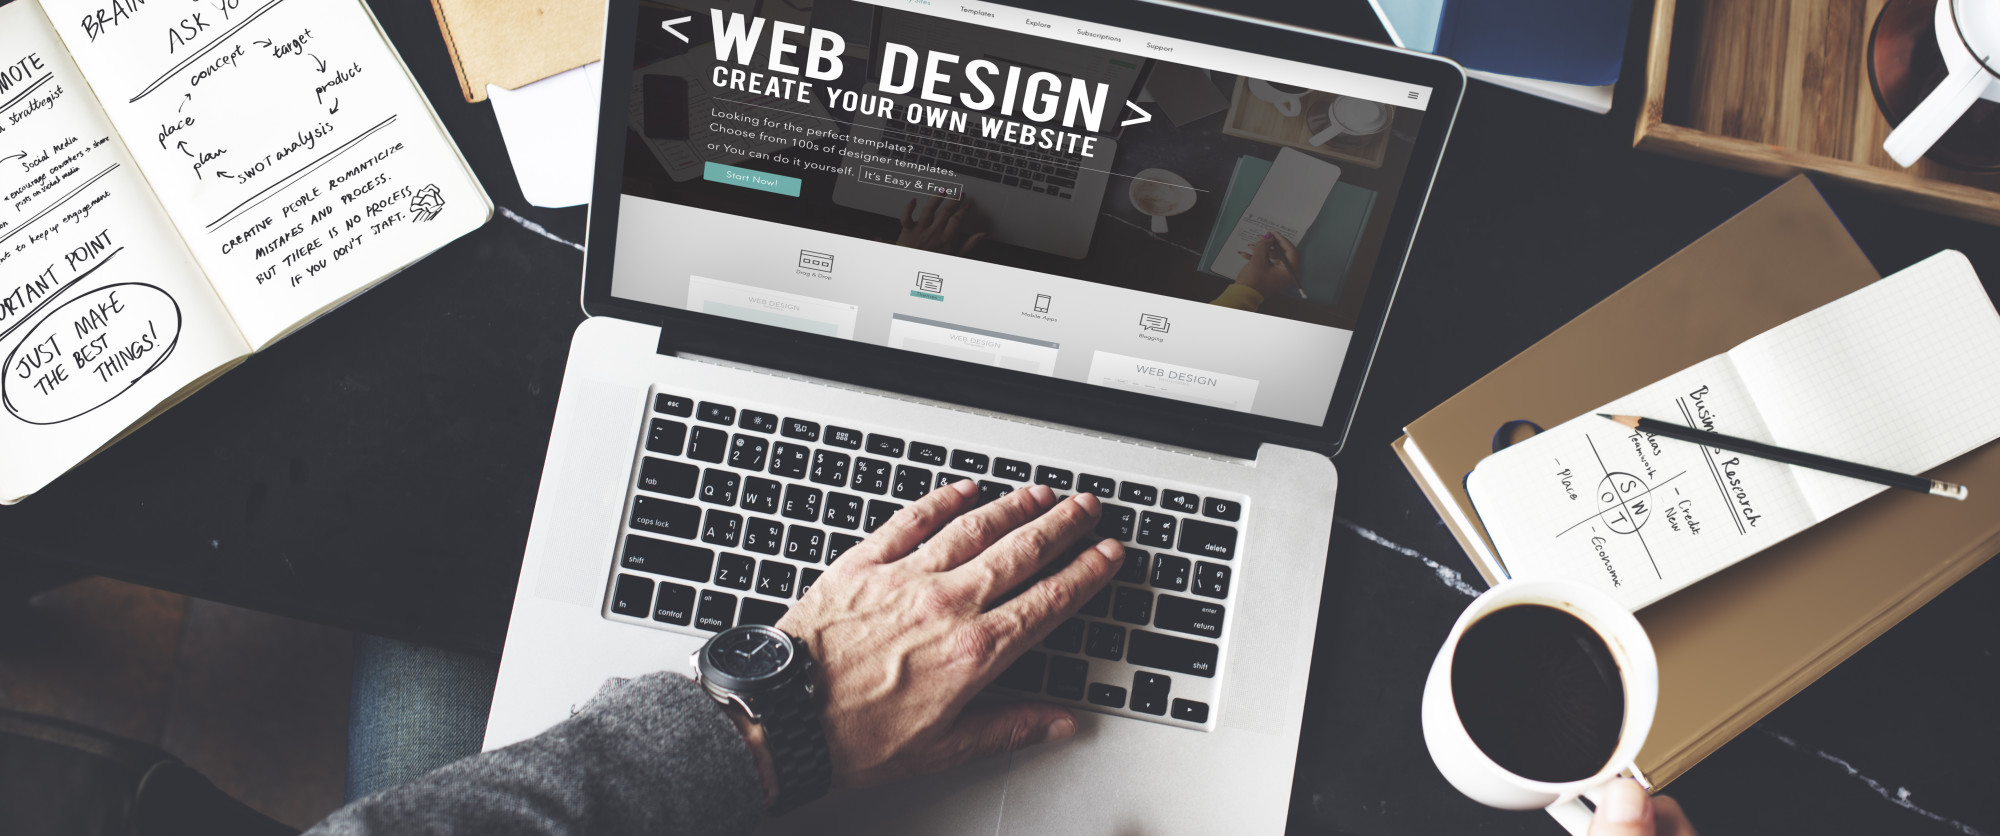 web design site on laptop